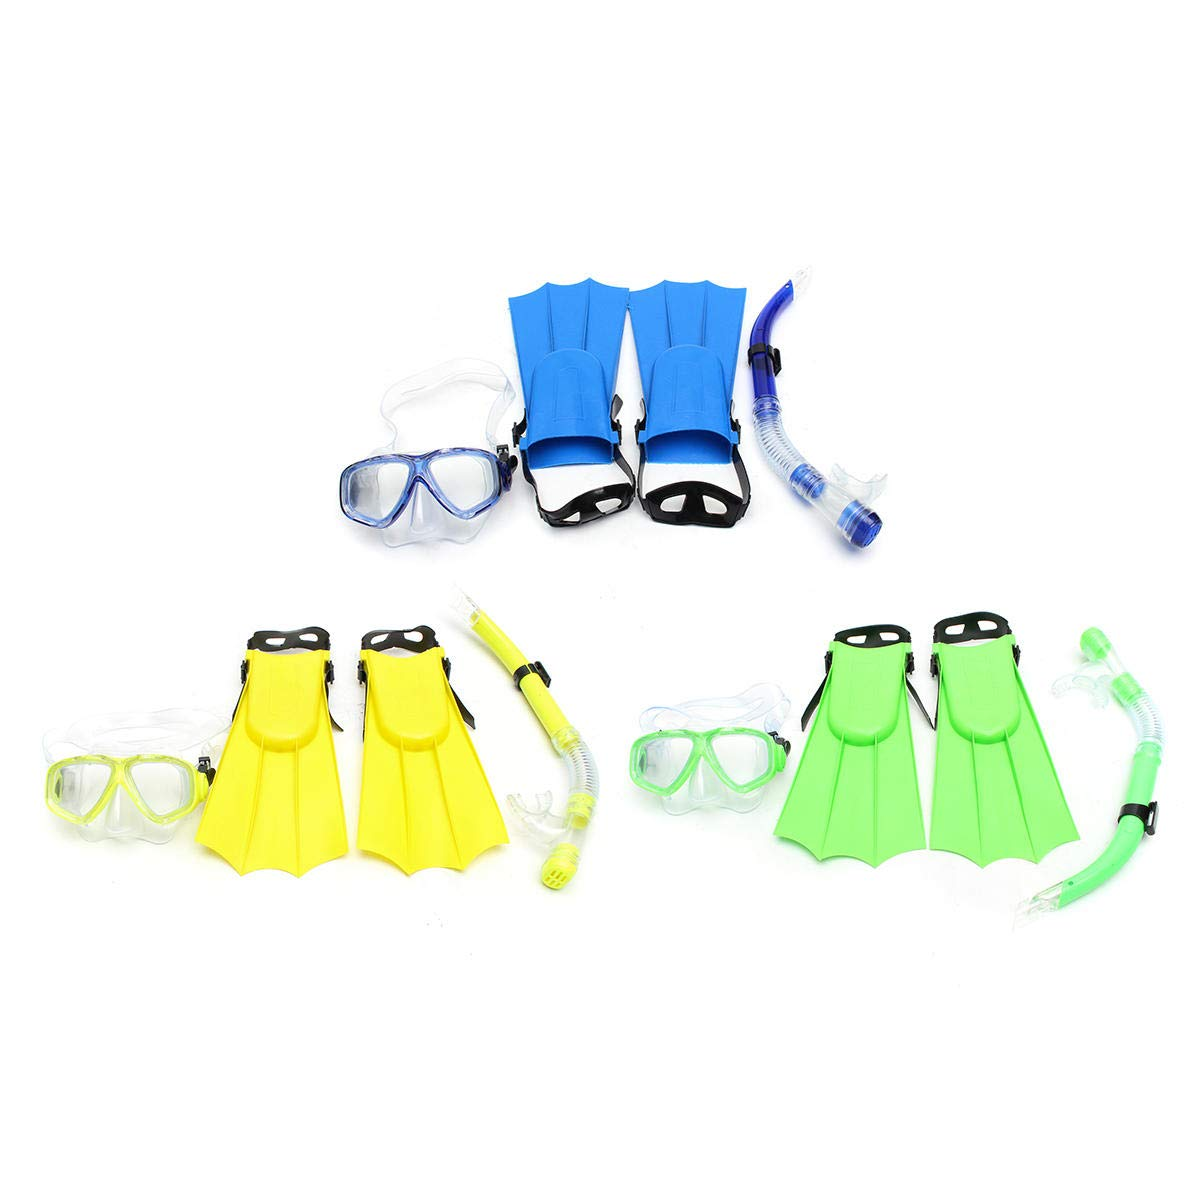 Shop Sport Kid Snorkel Mask Scuba Goggles + Breathing Tube+ Webbed Feet Swimming Diving Set - Yellow by Shop Sport (Image #3)